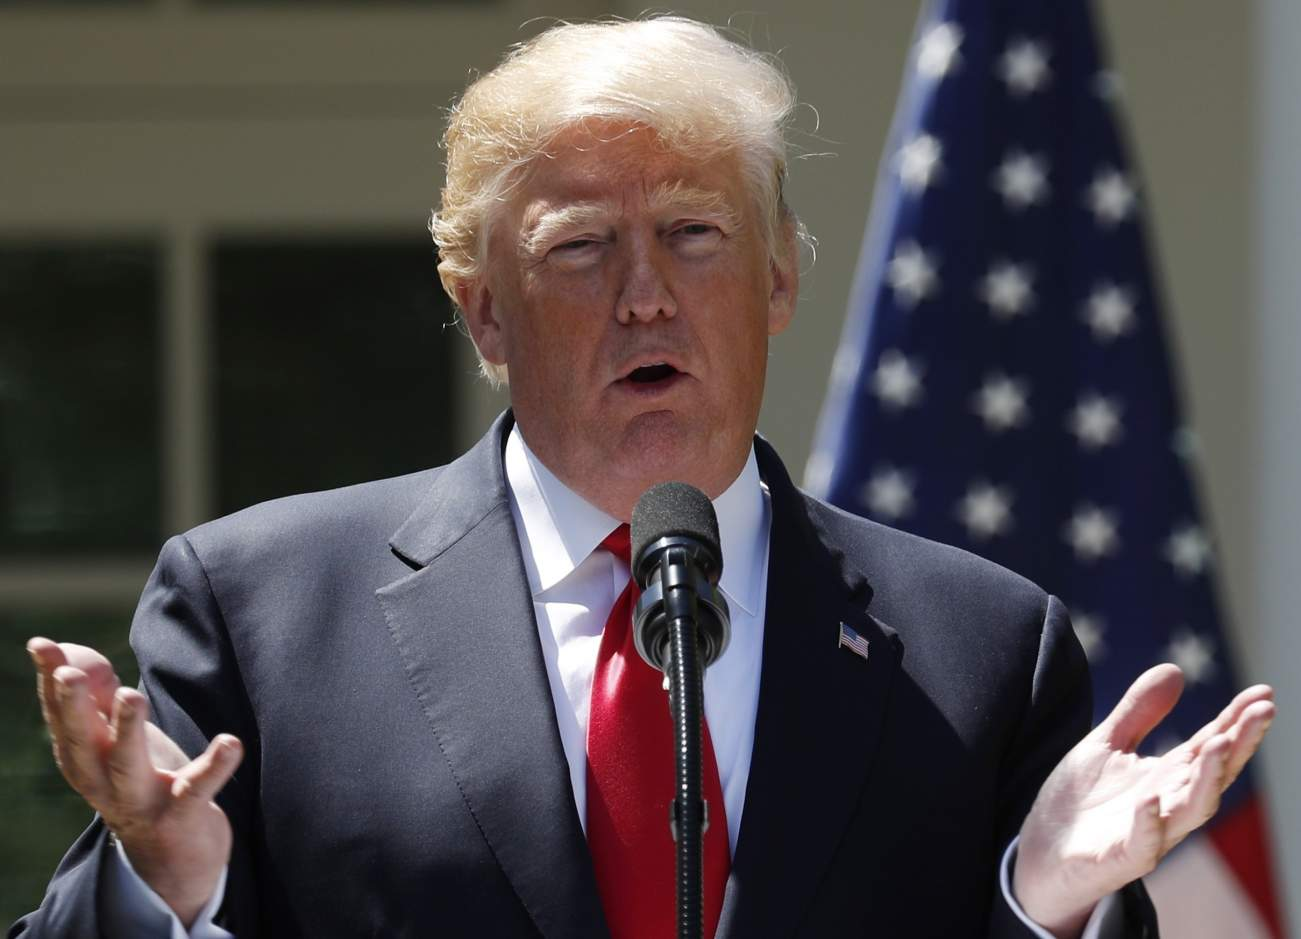 U.S. President Donald Trump addresses a joint news conference with Nigeria's President Muhammadu Buhari in the Rose Garden of the White House in Washington, U.S., April 30, 2018.